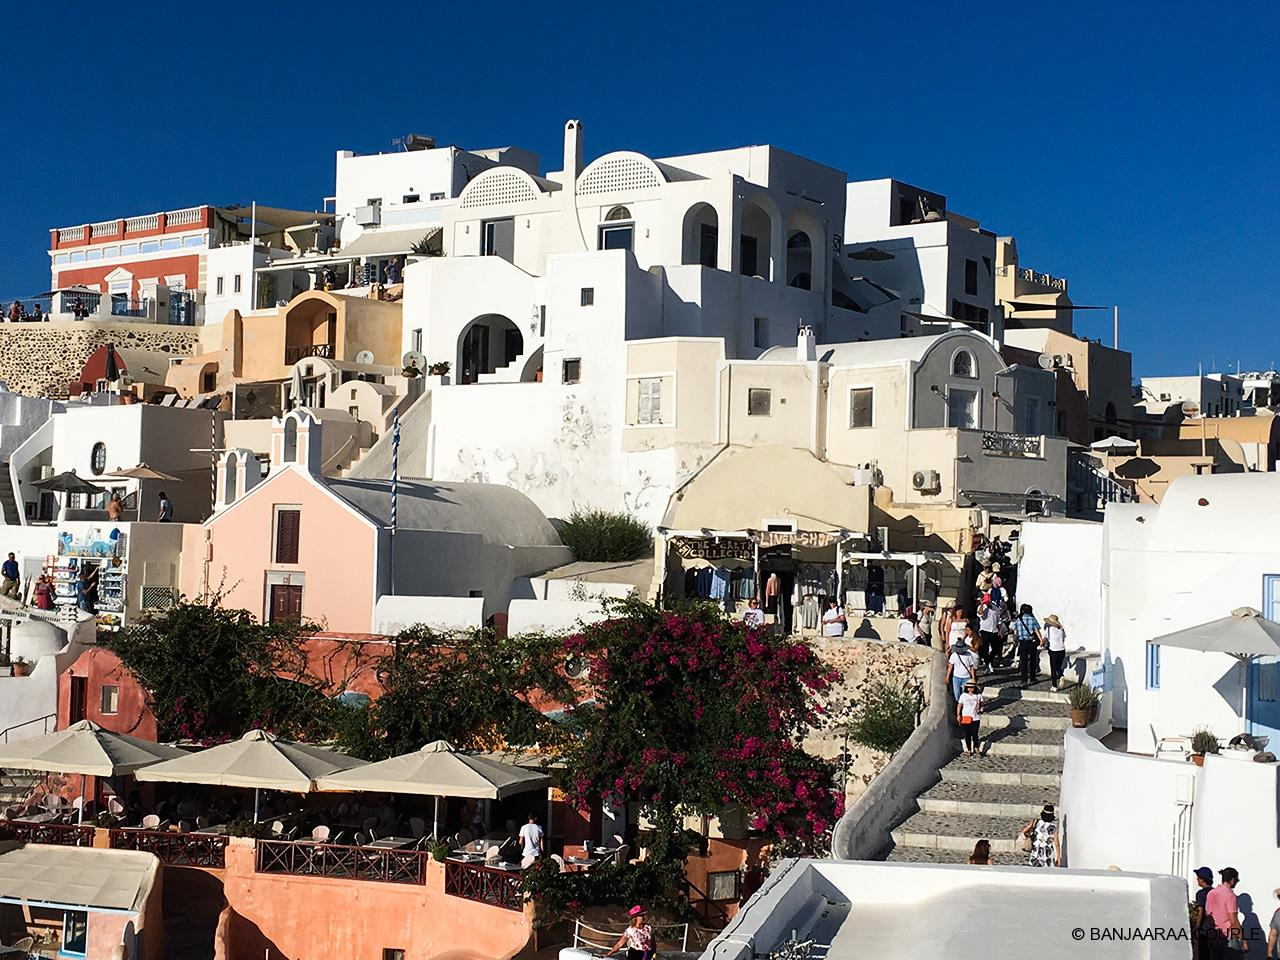 Oia bustling with activity